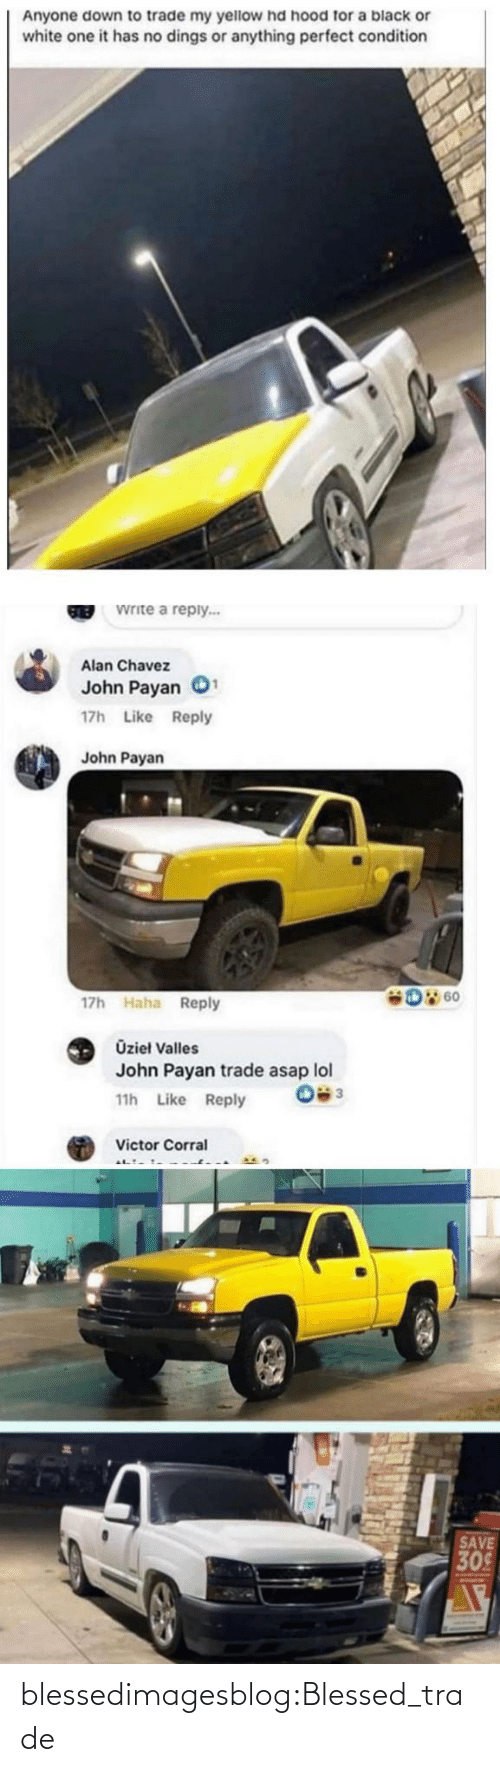 Blessed, Lol, and Tumblr: Anyone down to trade my yellow hd hood for a black or  white one it has no dings or anything perfect condition  Write a reply...  GREB  Alan Chavez  John Payan  17h Like Reply  John Payan  D 60  17h Haha Reply  Üzieł Valles  John Payan trade asap lol  11h Like Reply  Victor Corral  SAVE  309 blessedimagesblog:Blessed_trade